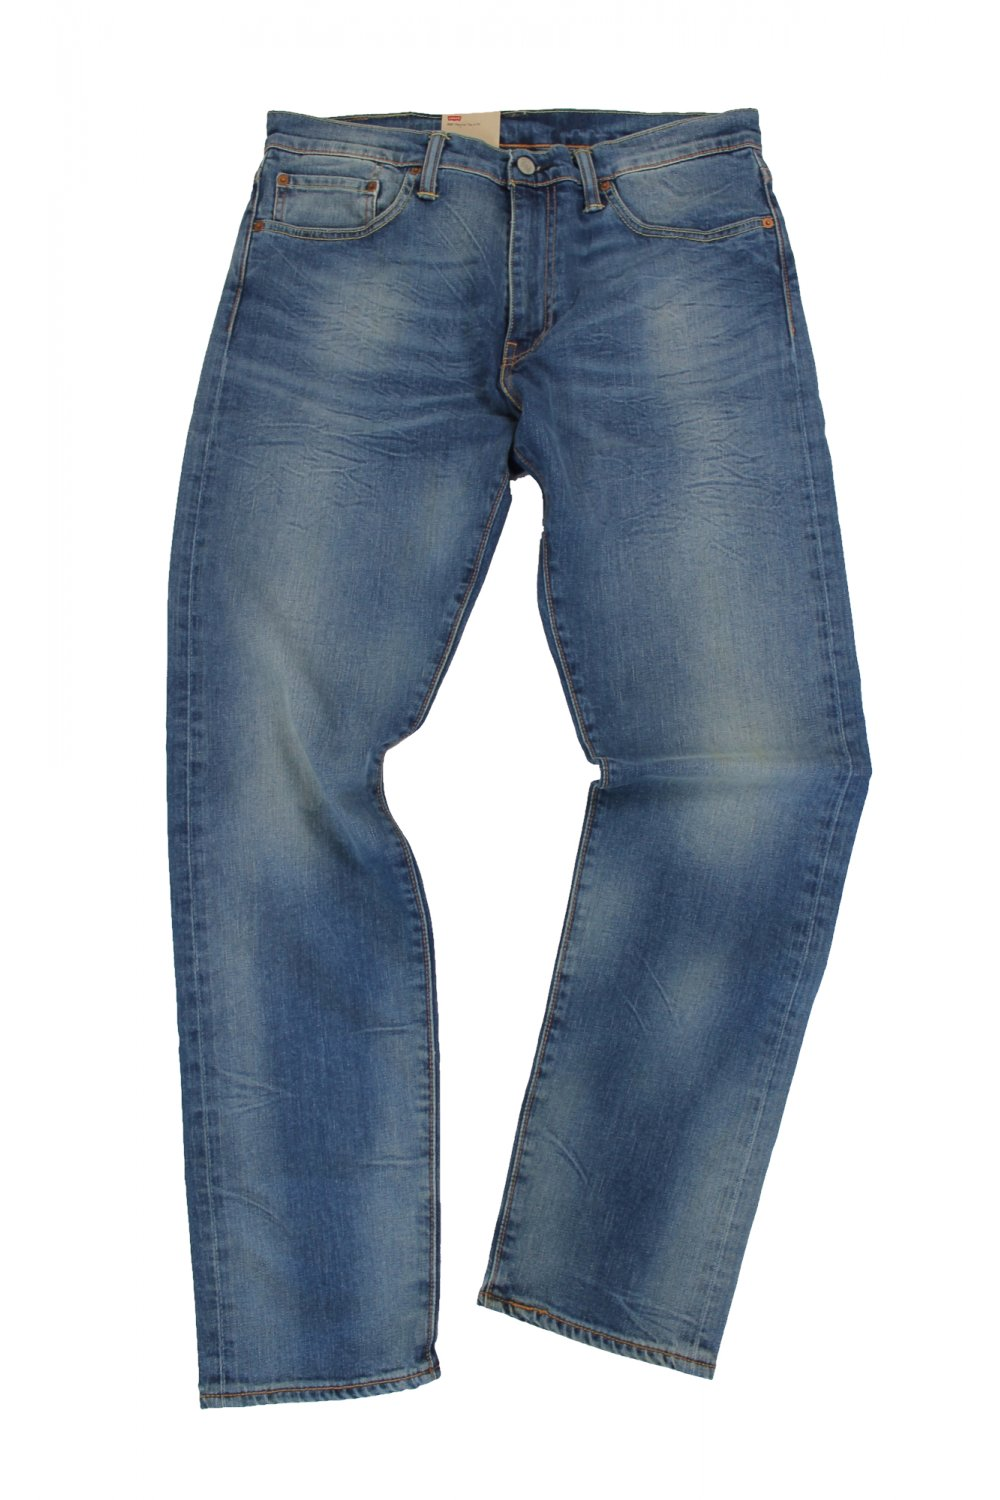 levi 39 s 508 tapered fit jeans dr john levi 39 s from thirtysix uk. Black Bedroom Furniture Sets. Home Design Ideas